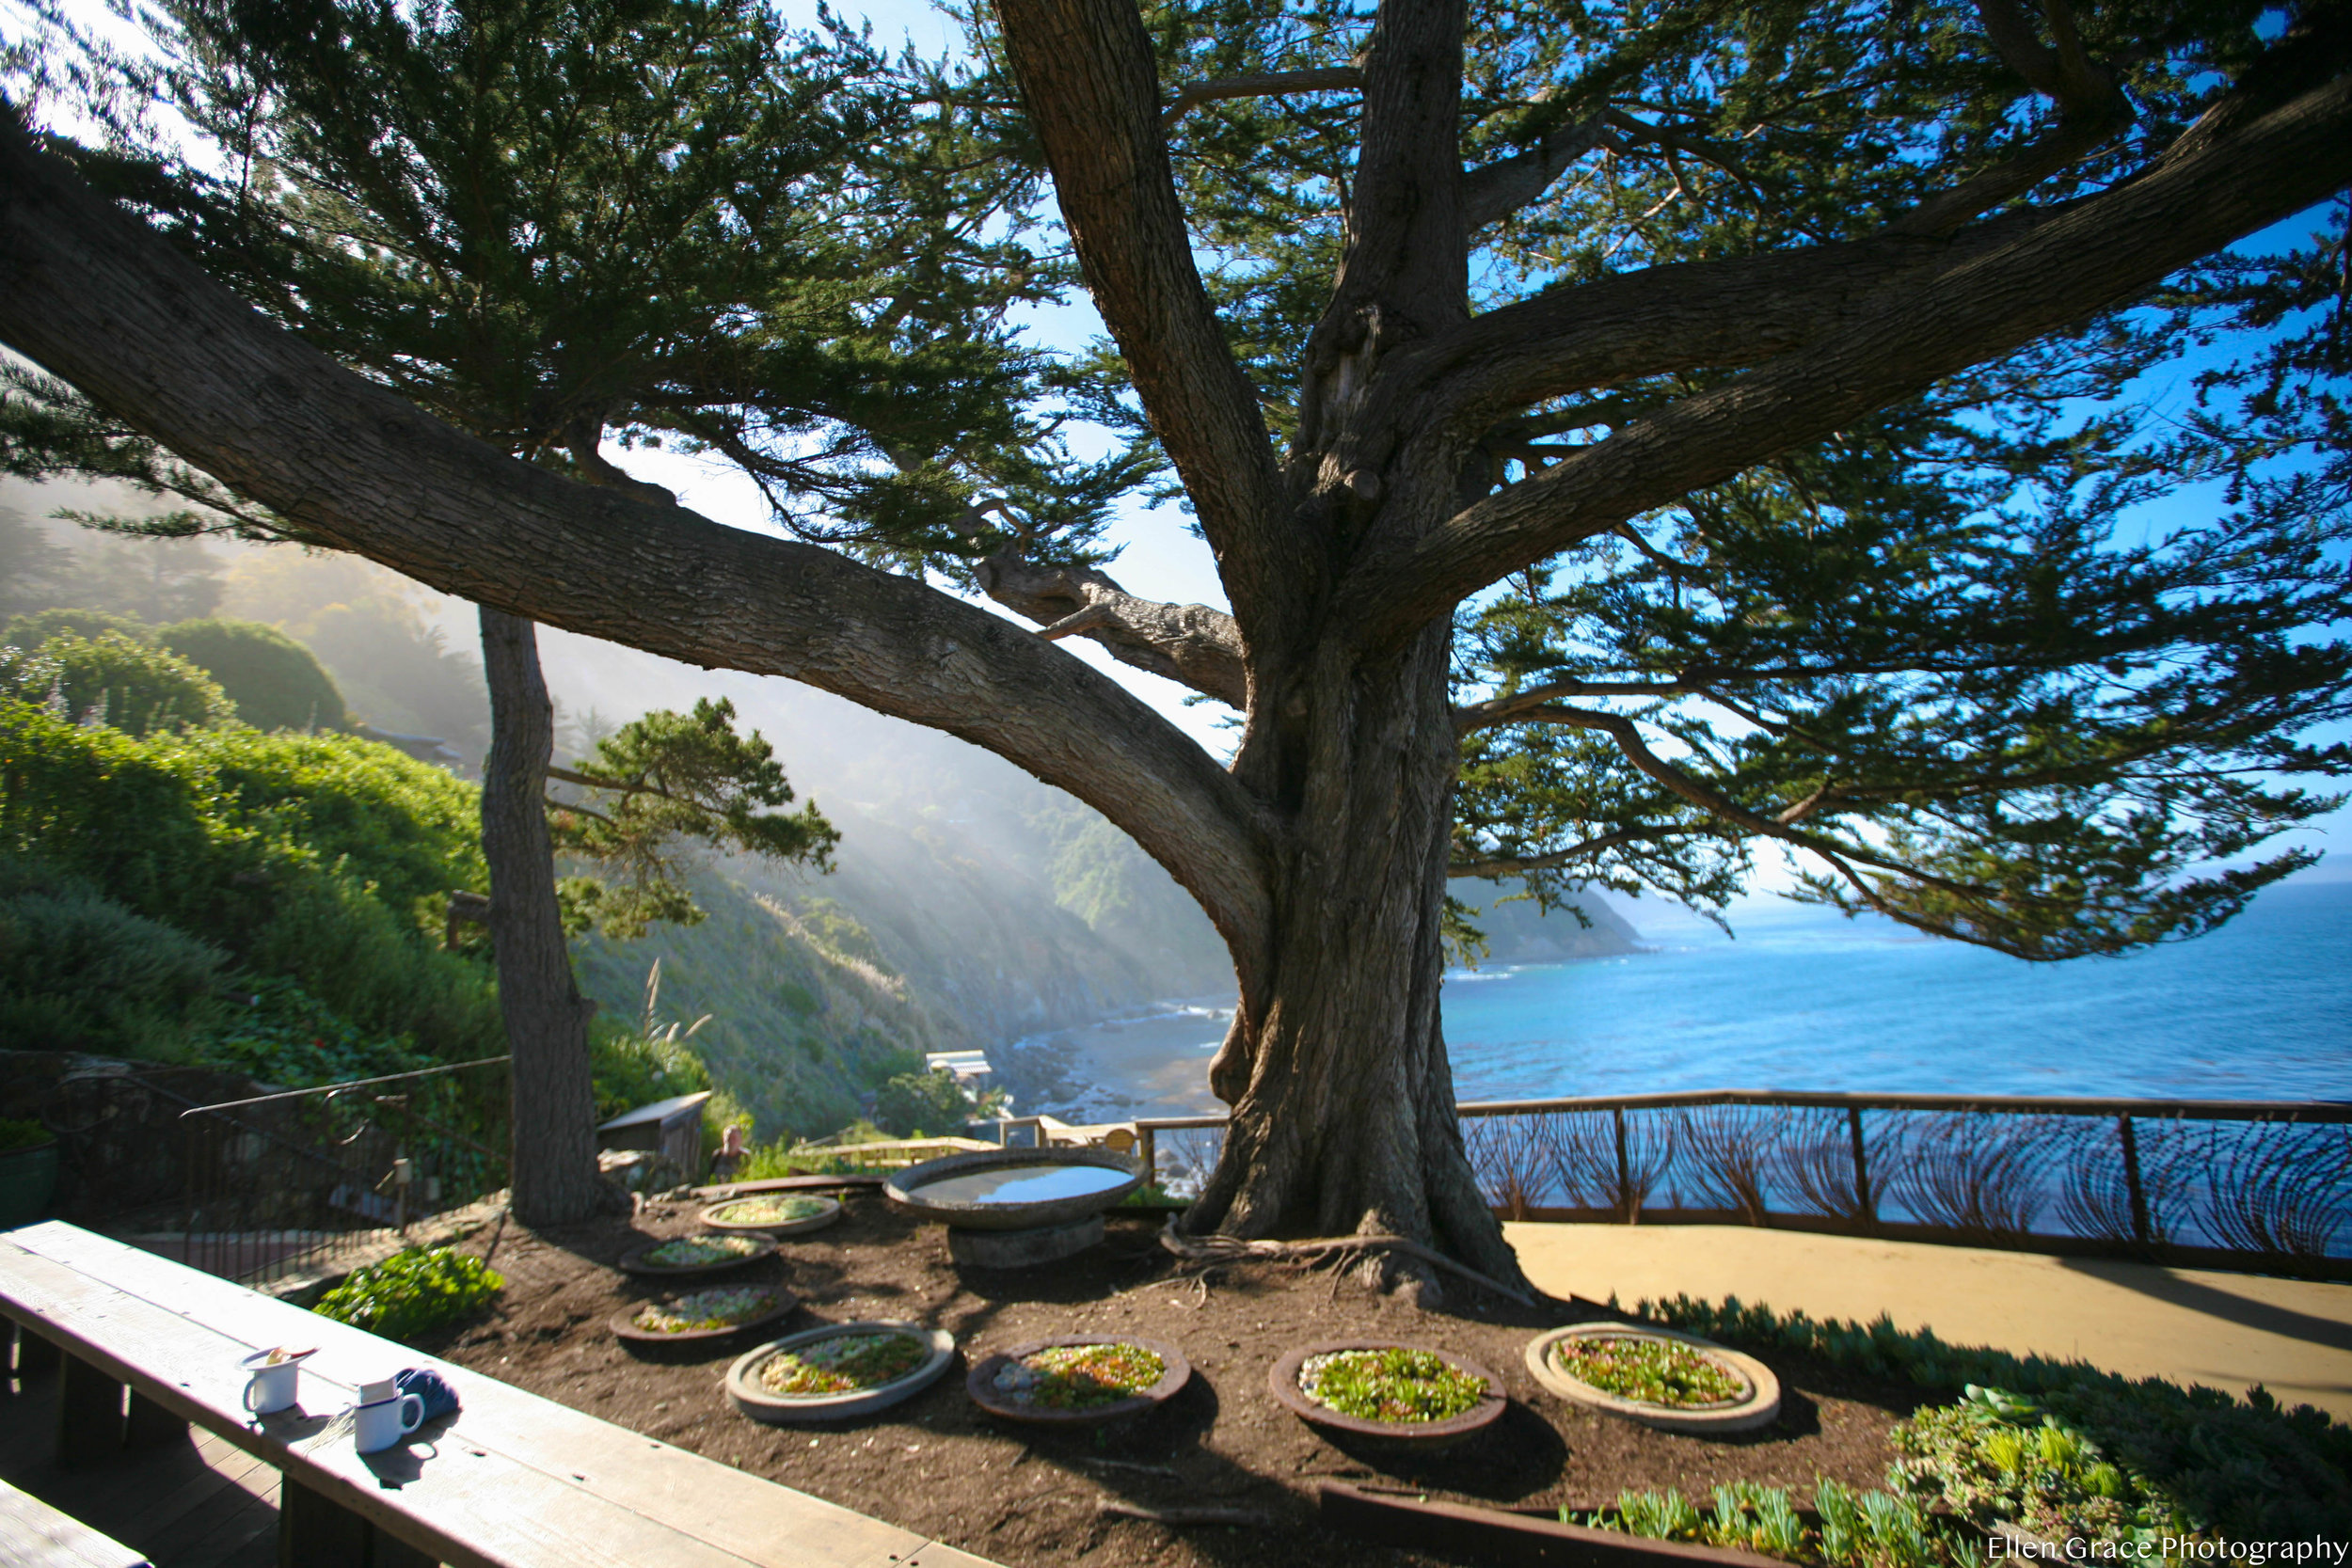 Esalen-2018-Highlights-34-1.jpg